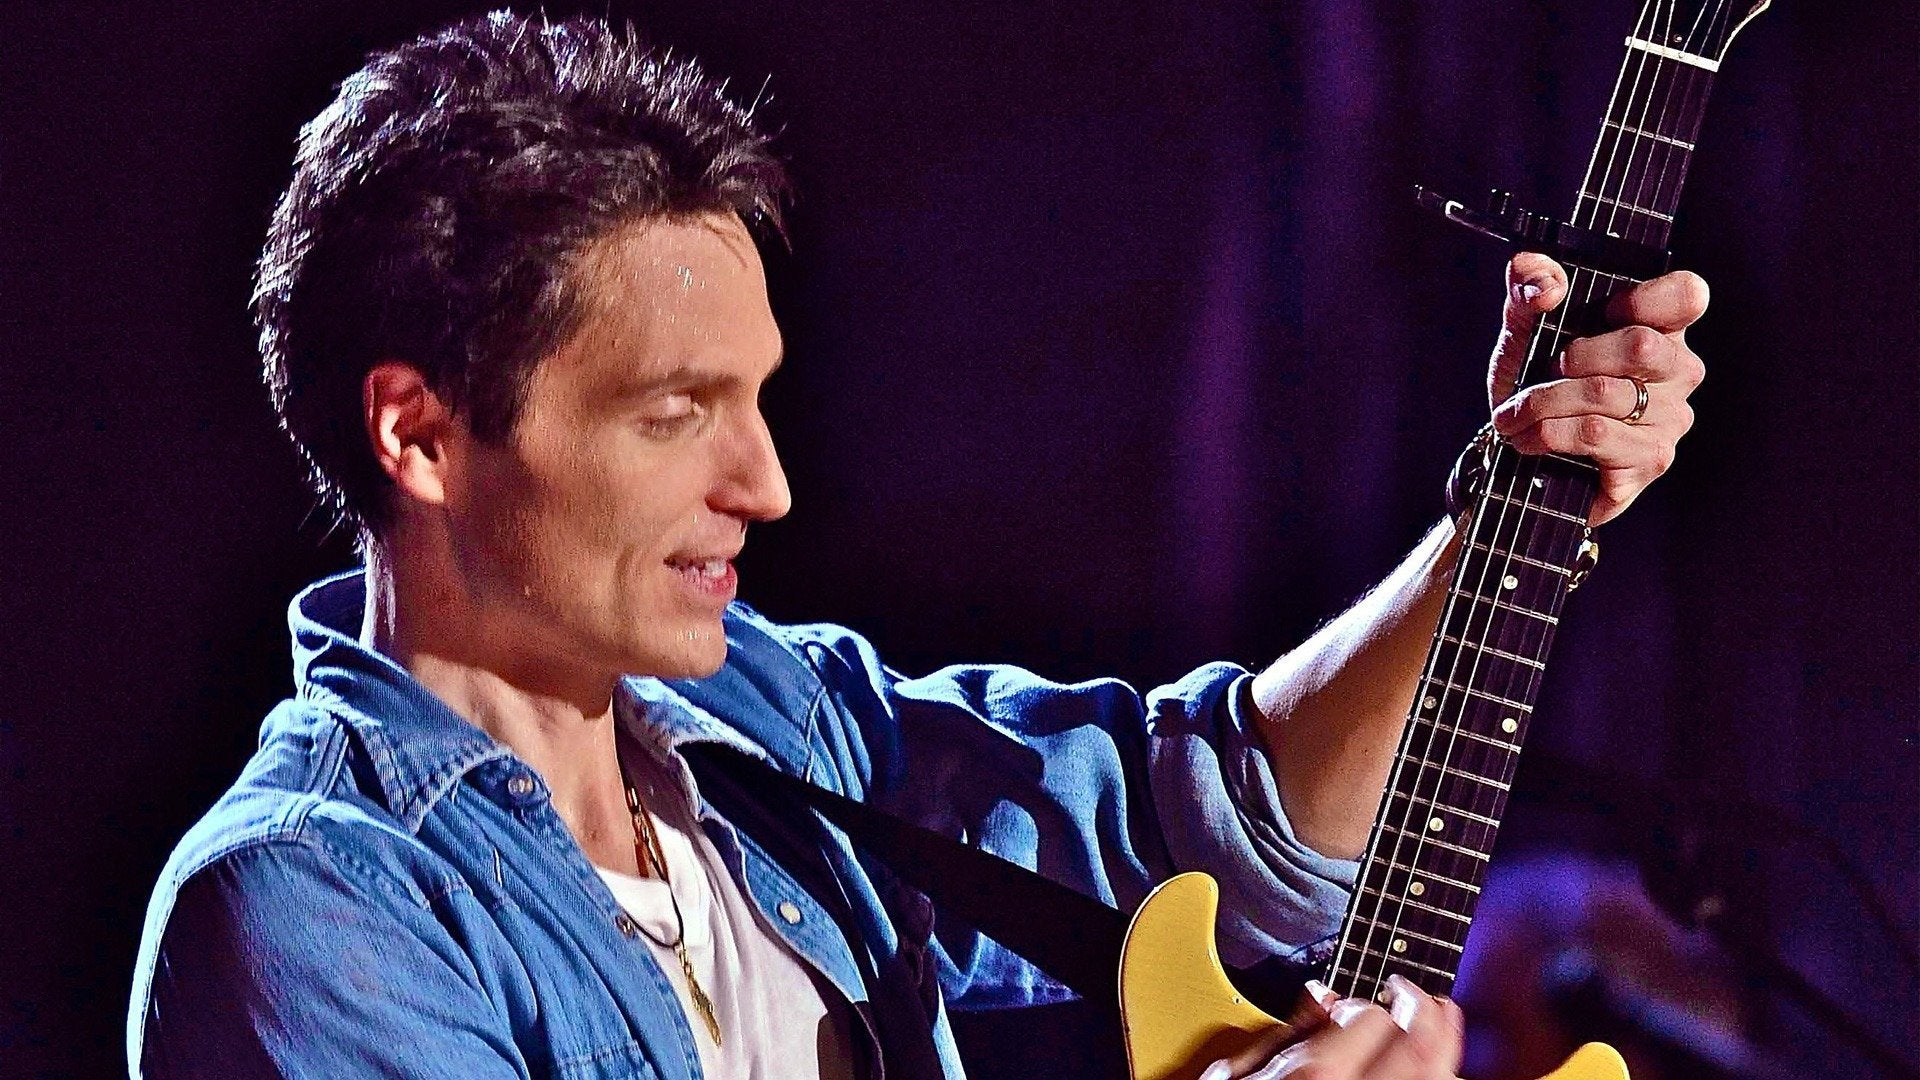 Richard Marx A Night Out With Friends